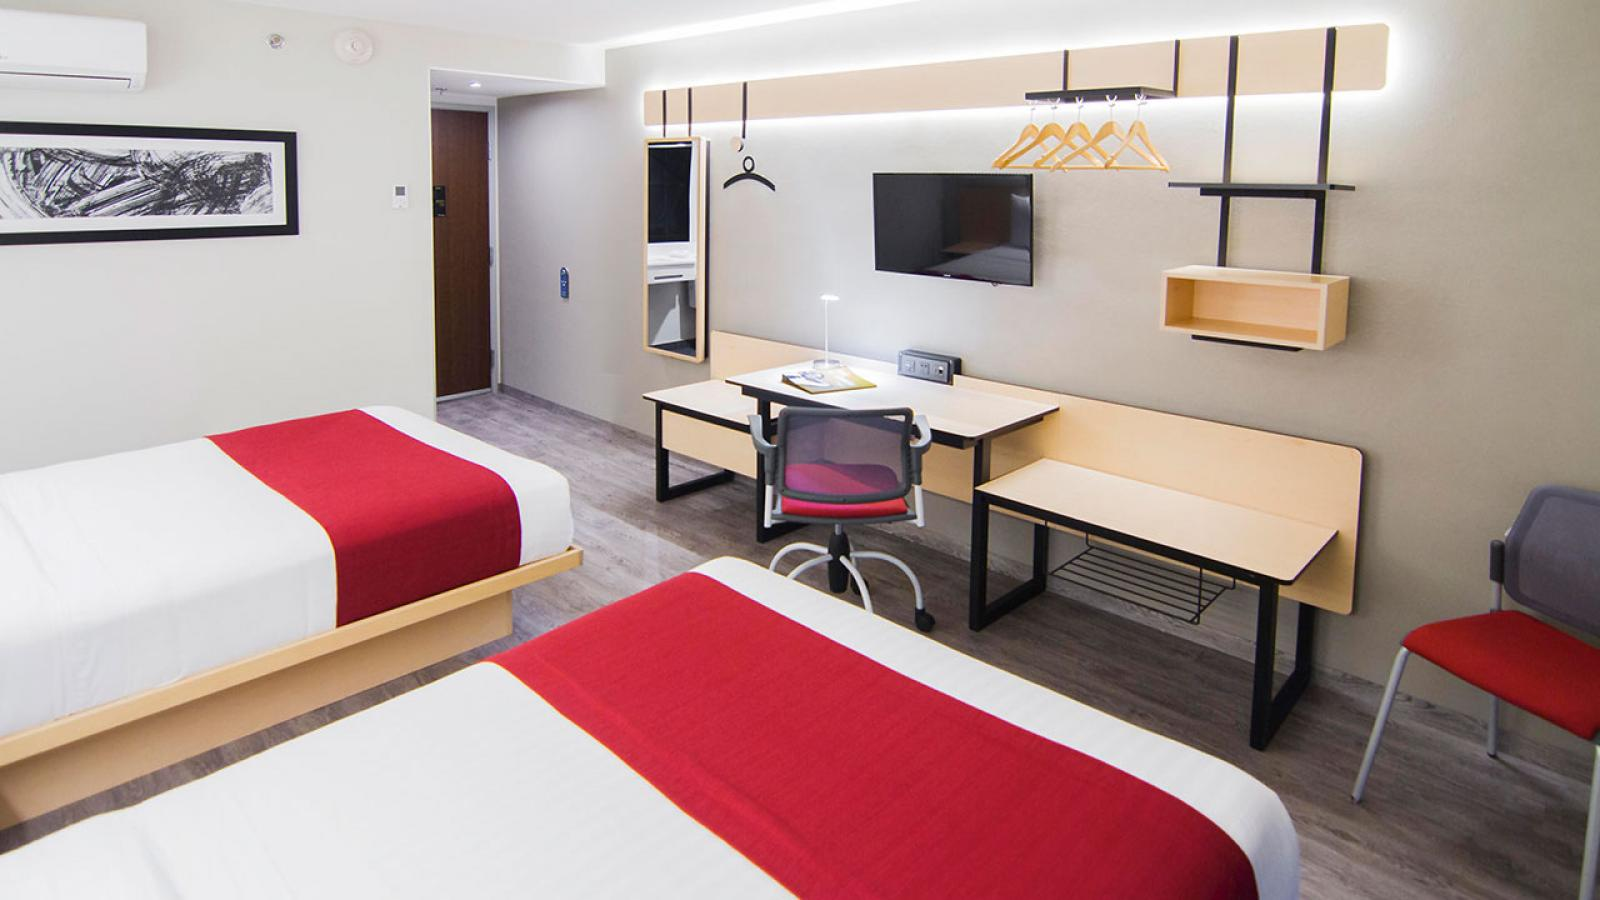 piedras negras chat rooms Quality inn piedras negras hotel rooms enjoy an excellent stay in these guestrooms, each with convenient services to satisfy all your business travel and vacation needs throughout your.